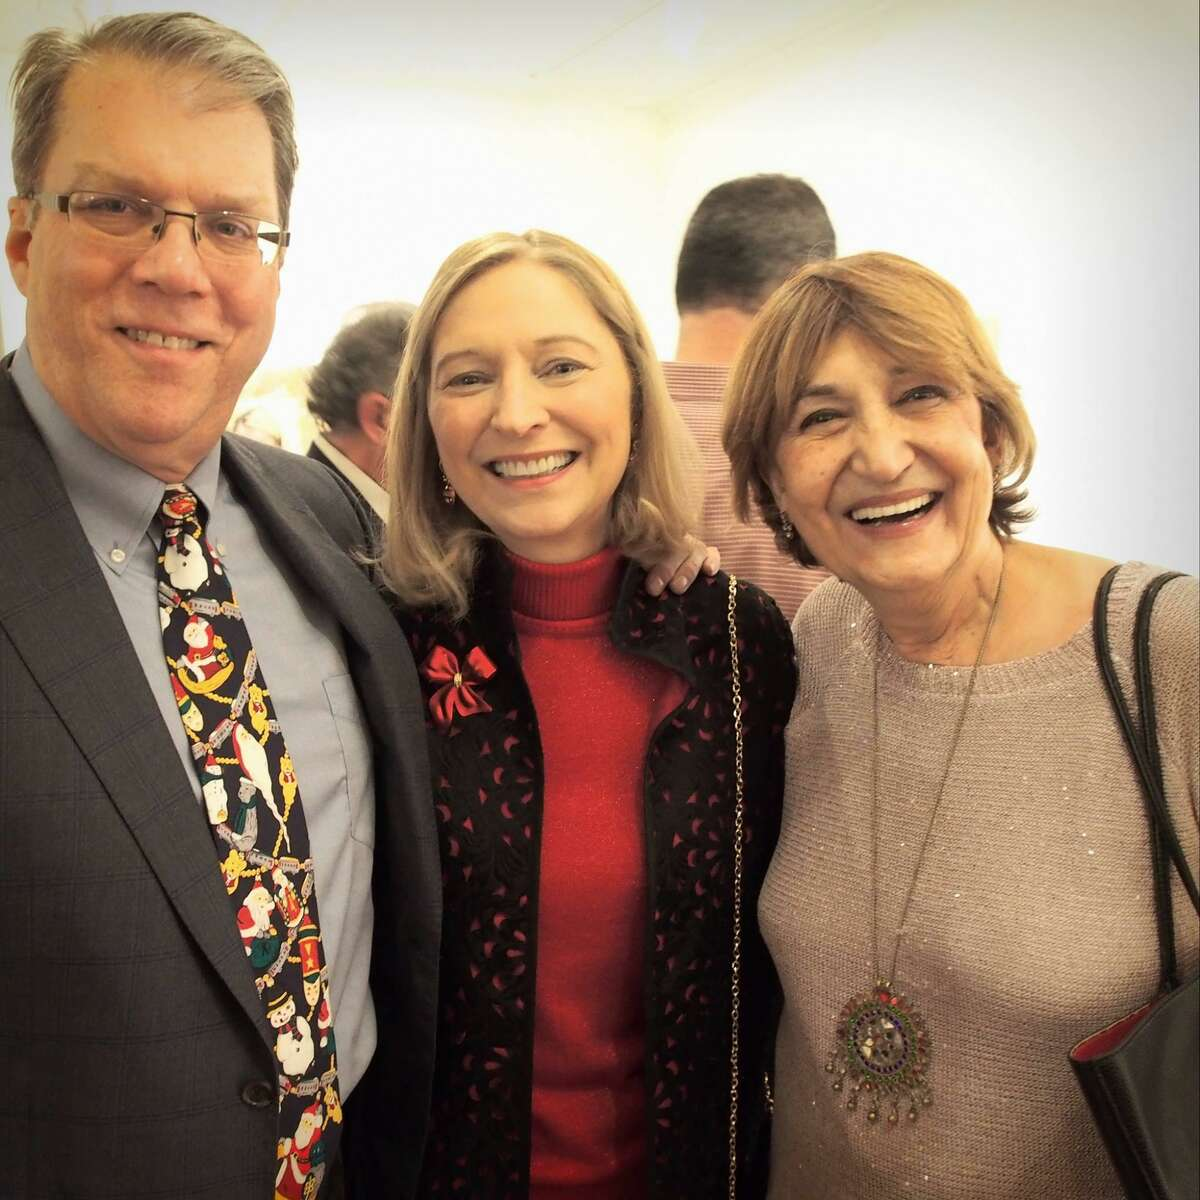 Deck the Halls martini tasting party and fundraiser to benefit FISH of Northwest Connecticut, returns Dec. 5 to Torrington. This year's event will be held at Five Points Gallery. Above, guests including Ken and Cara Blazier and Noushin Ehsan enjoy the event in 2017.